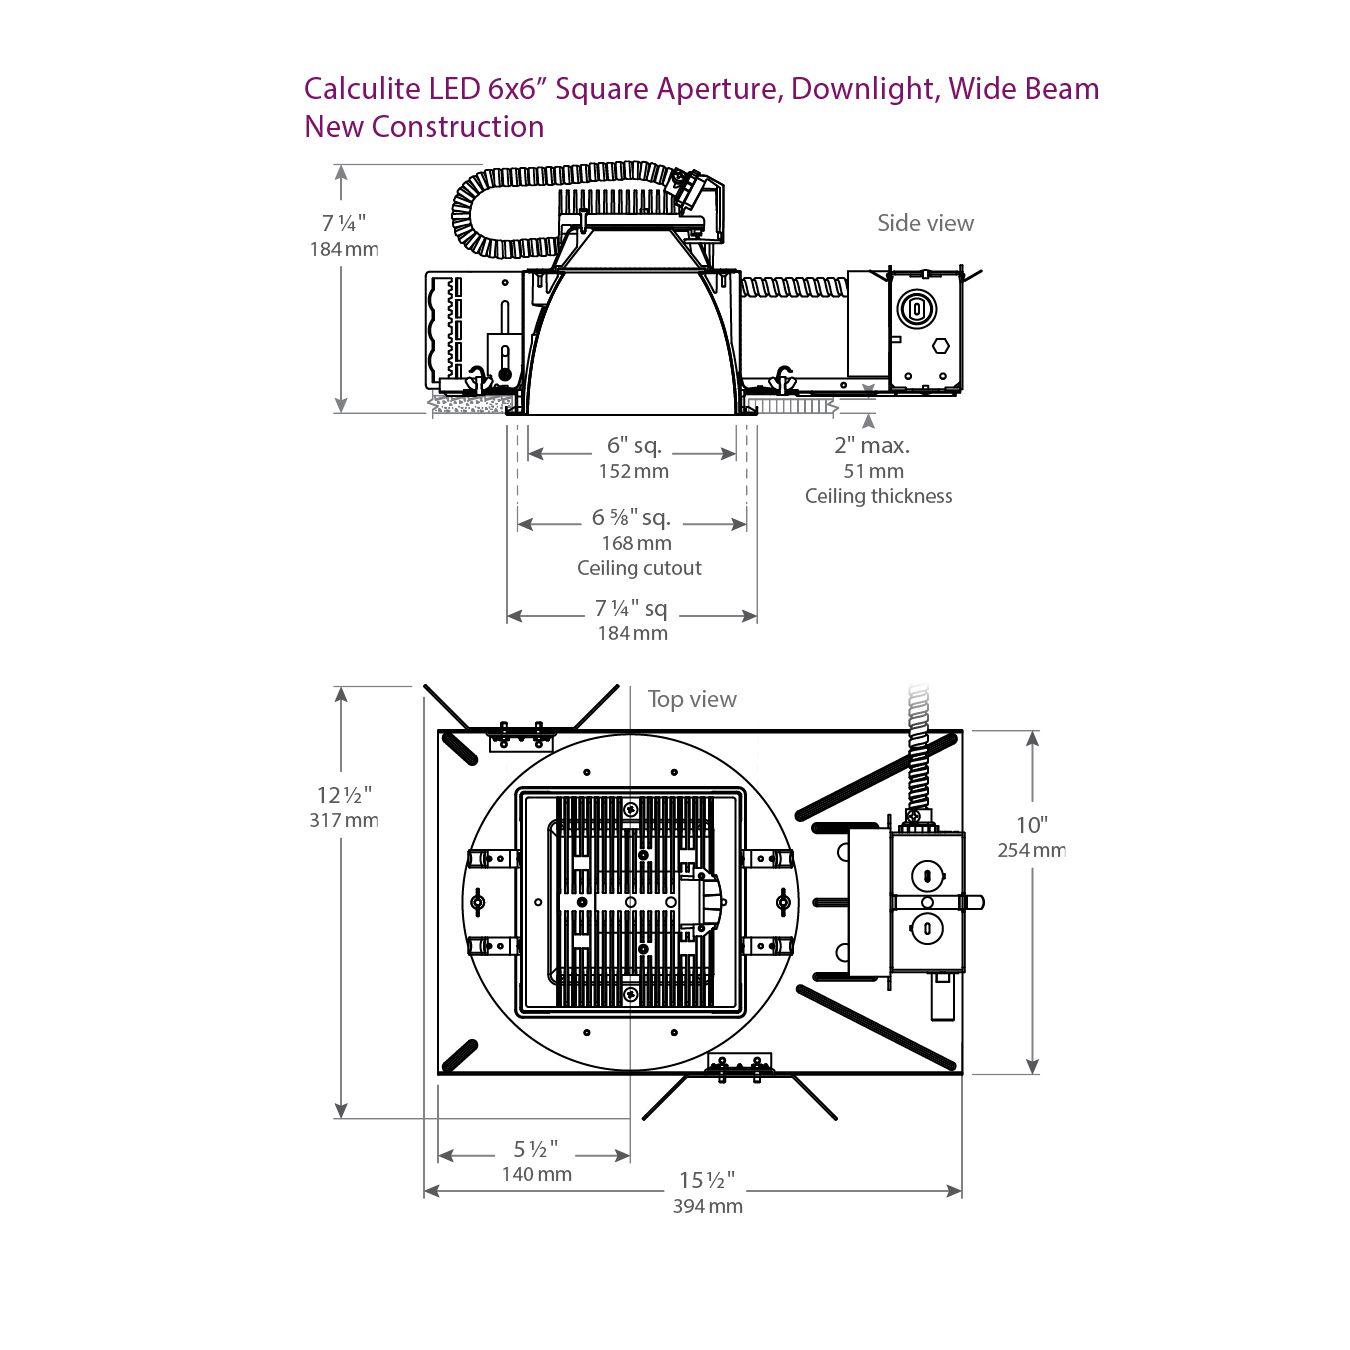 Philips Lightolier C6x6l15n Calculite Lumens Recessed Led 6 Inch X 6 Inch Square Downlight